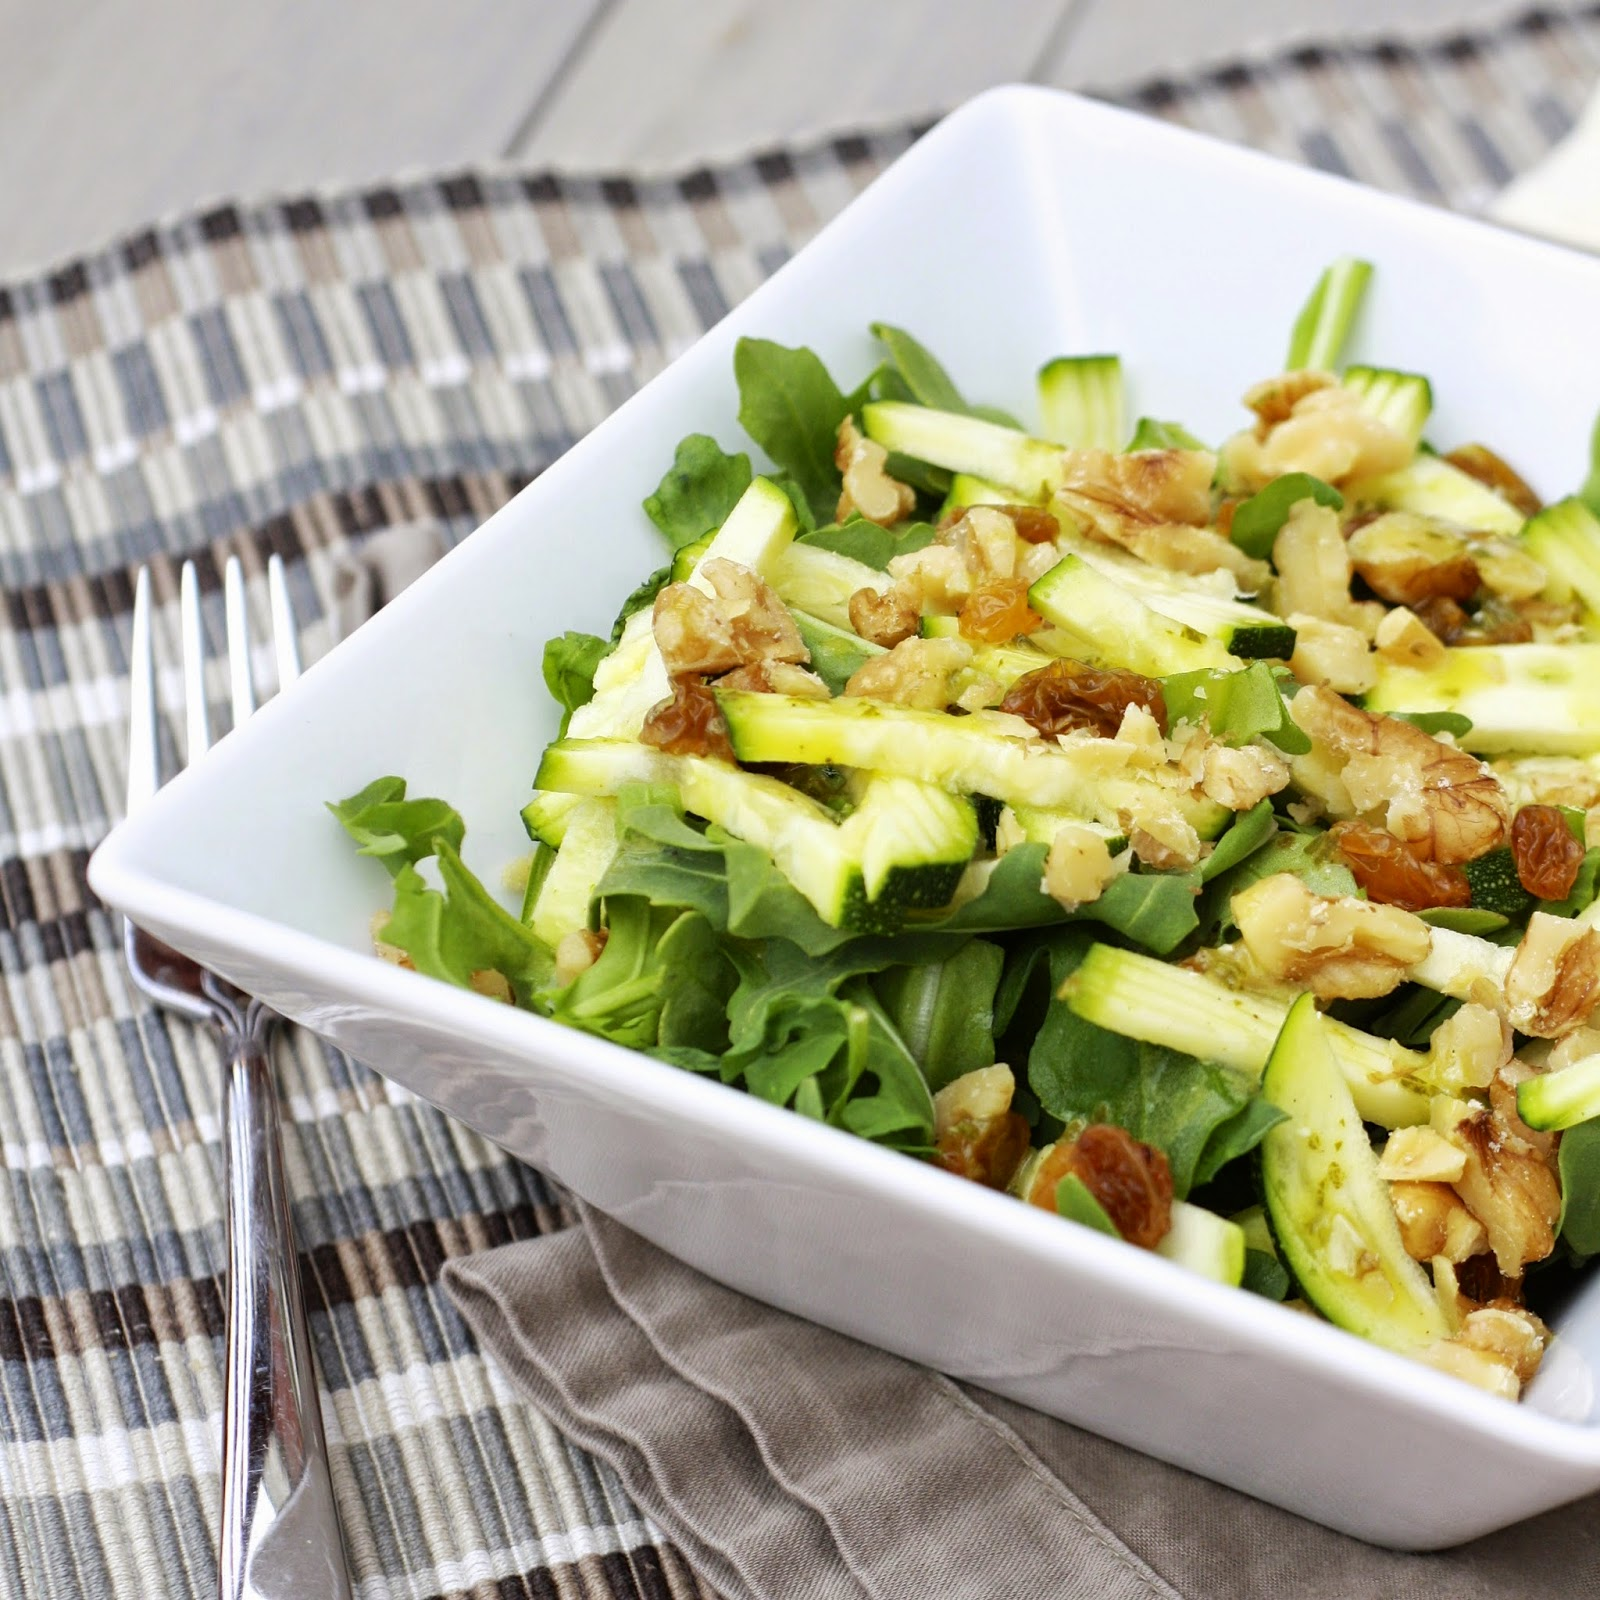 Zucchini and Walnut Arugula Salad with Basil Lemon Vinaigrette | The Sweets Life